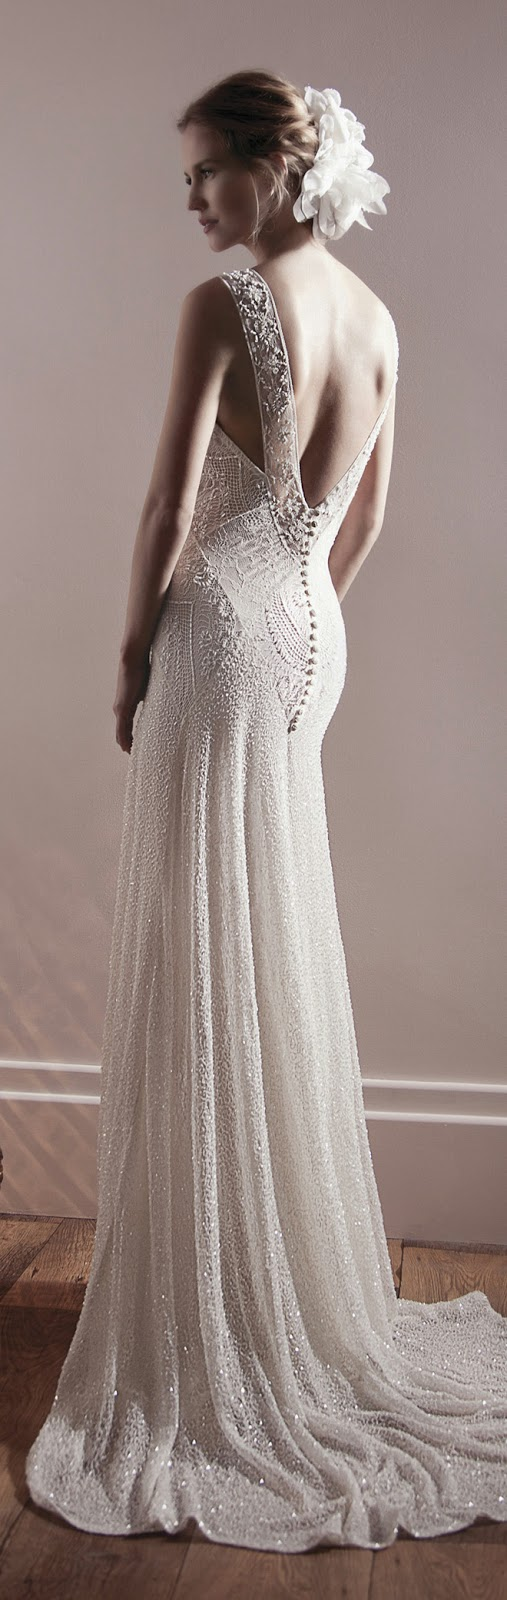 Lihi hod 2013 bridal collection belle the magazine for Lihi hod wedding dress